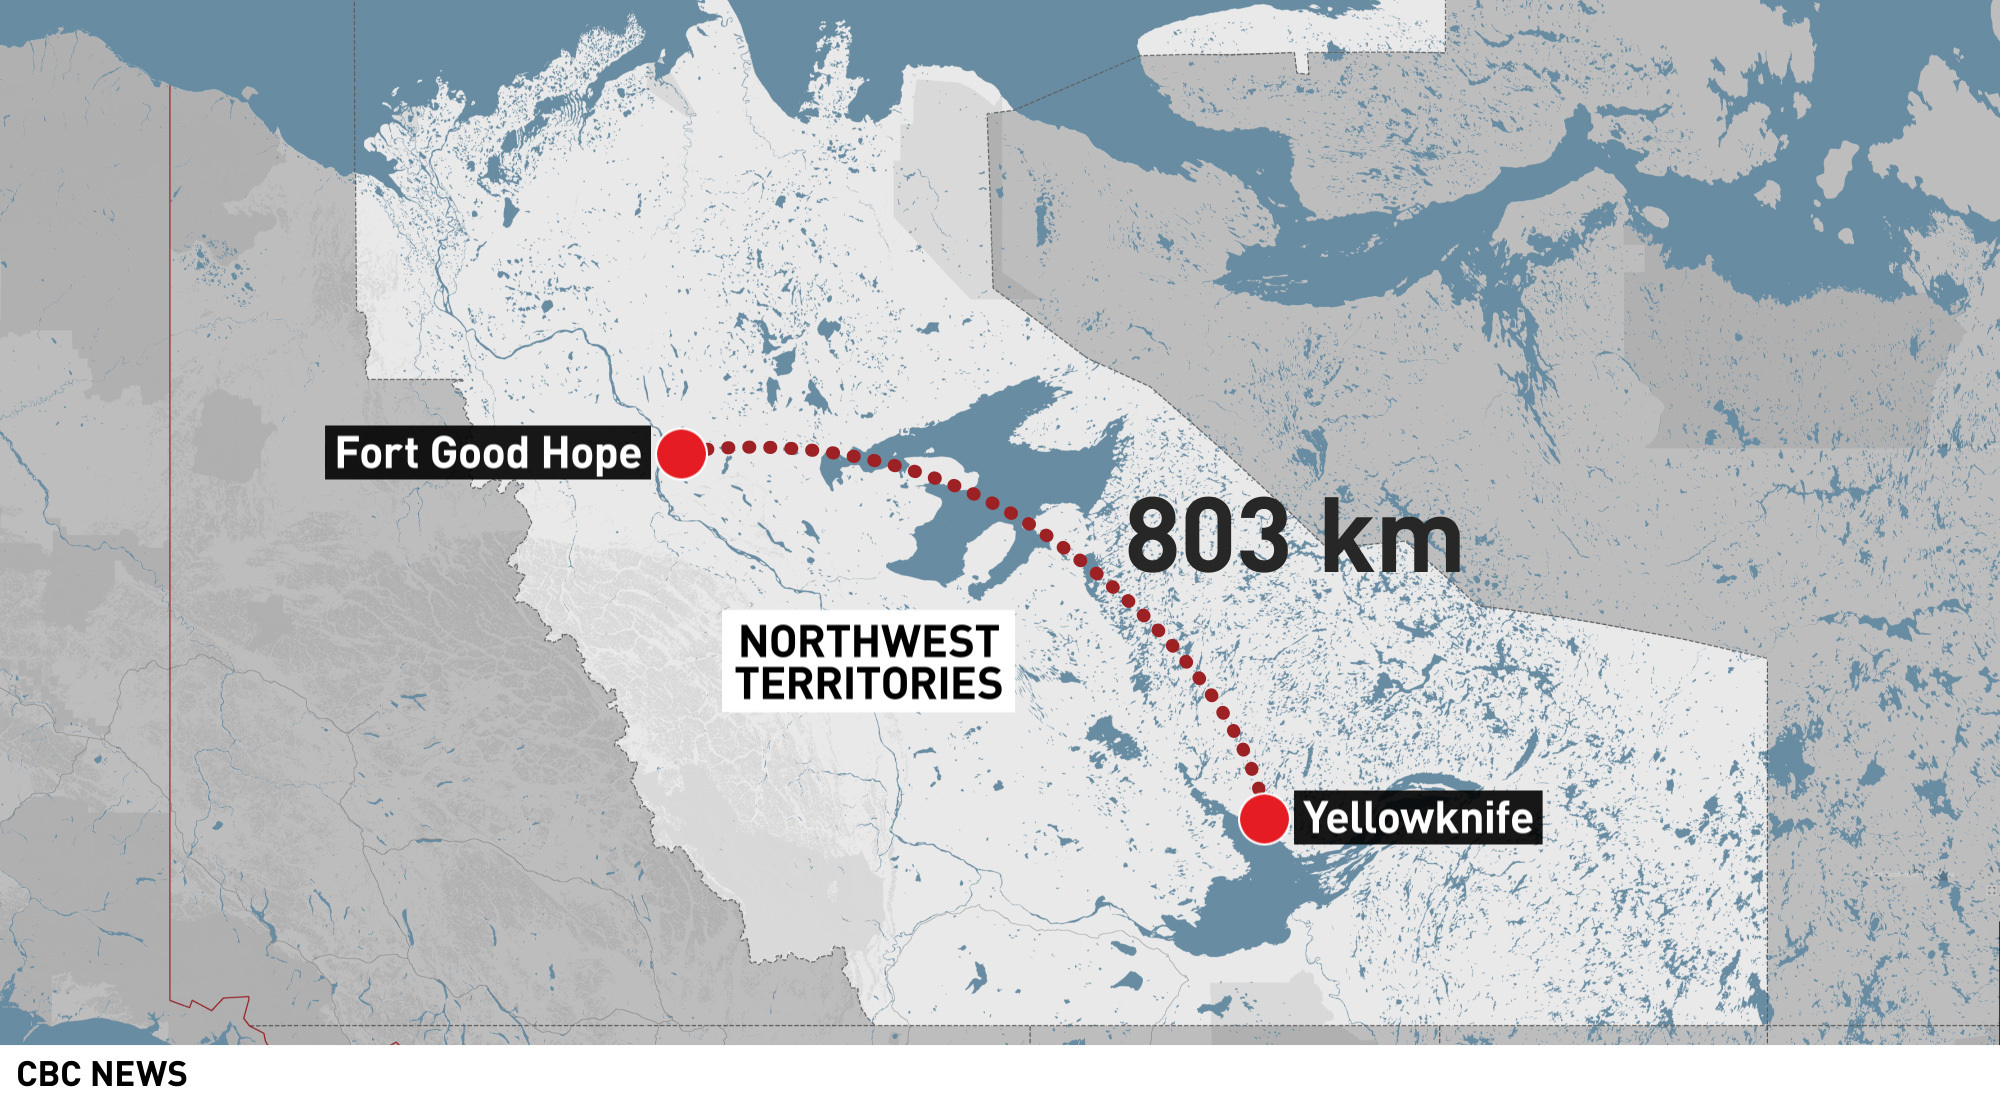 Fort Good Hope is about 800 kilometres northwest of Yellowknife. It's only accessible by air during the summer months. With shipping, construction materials cost twice as much as they do in southern Canada.